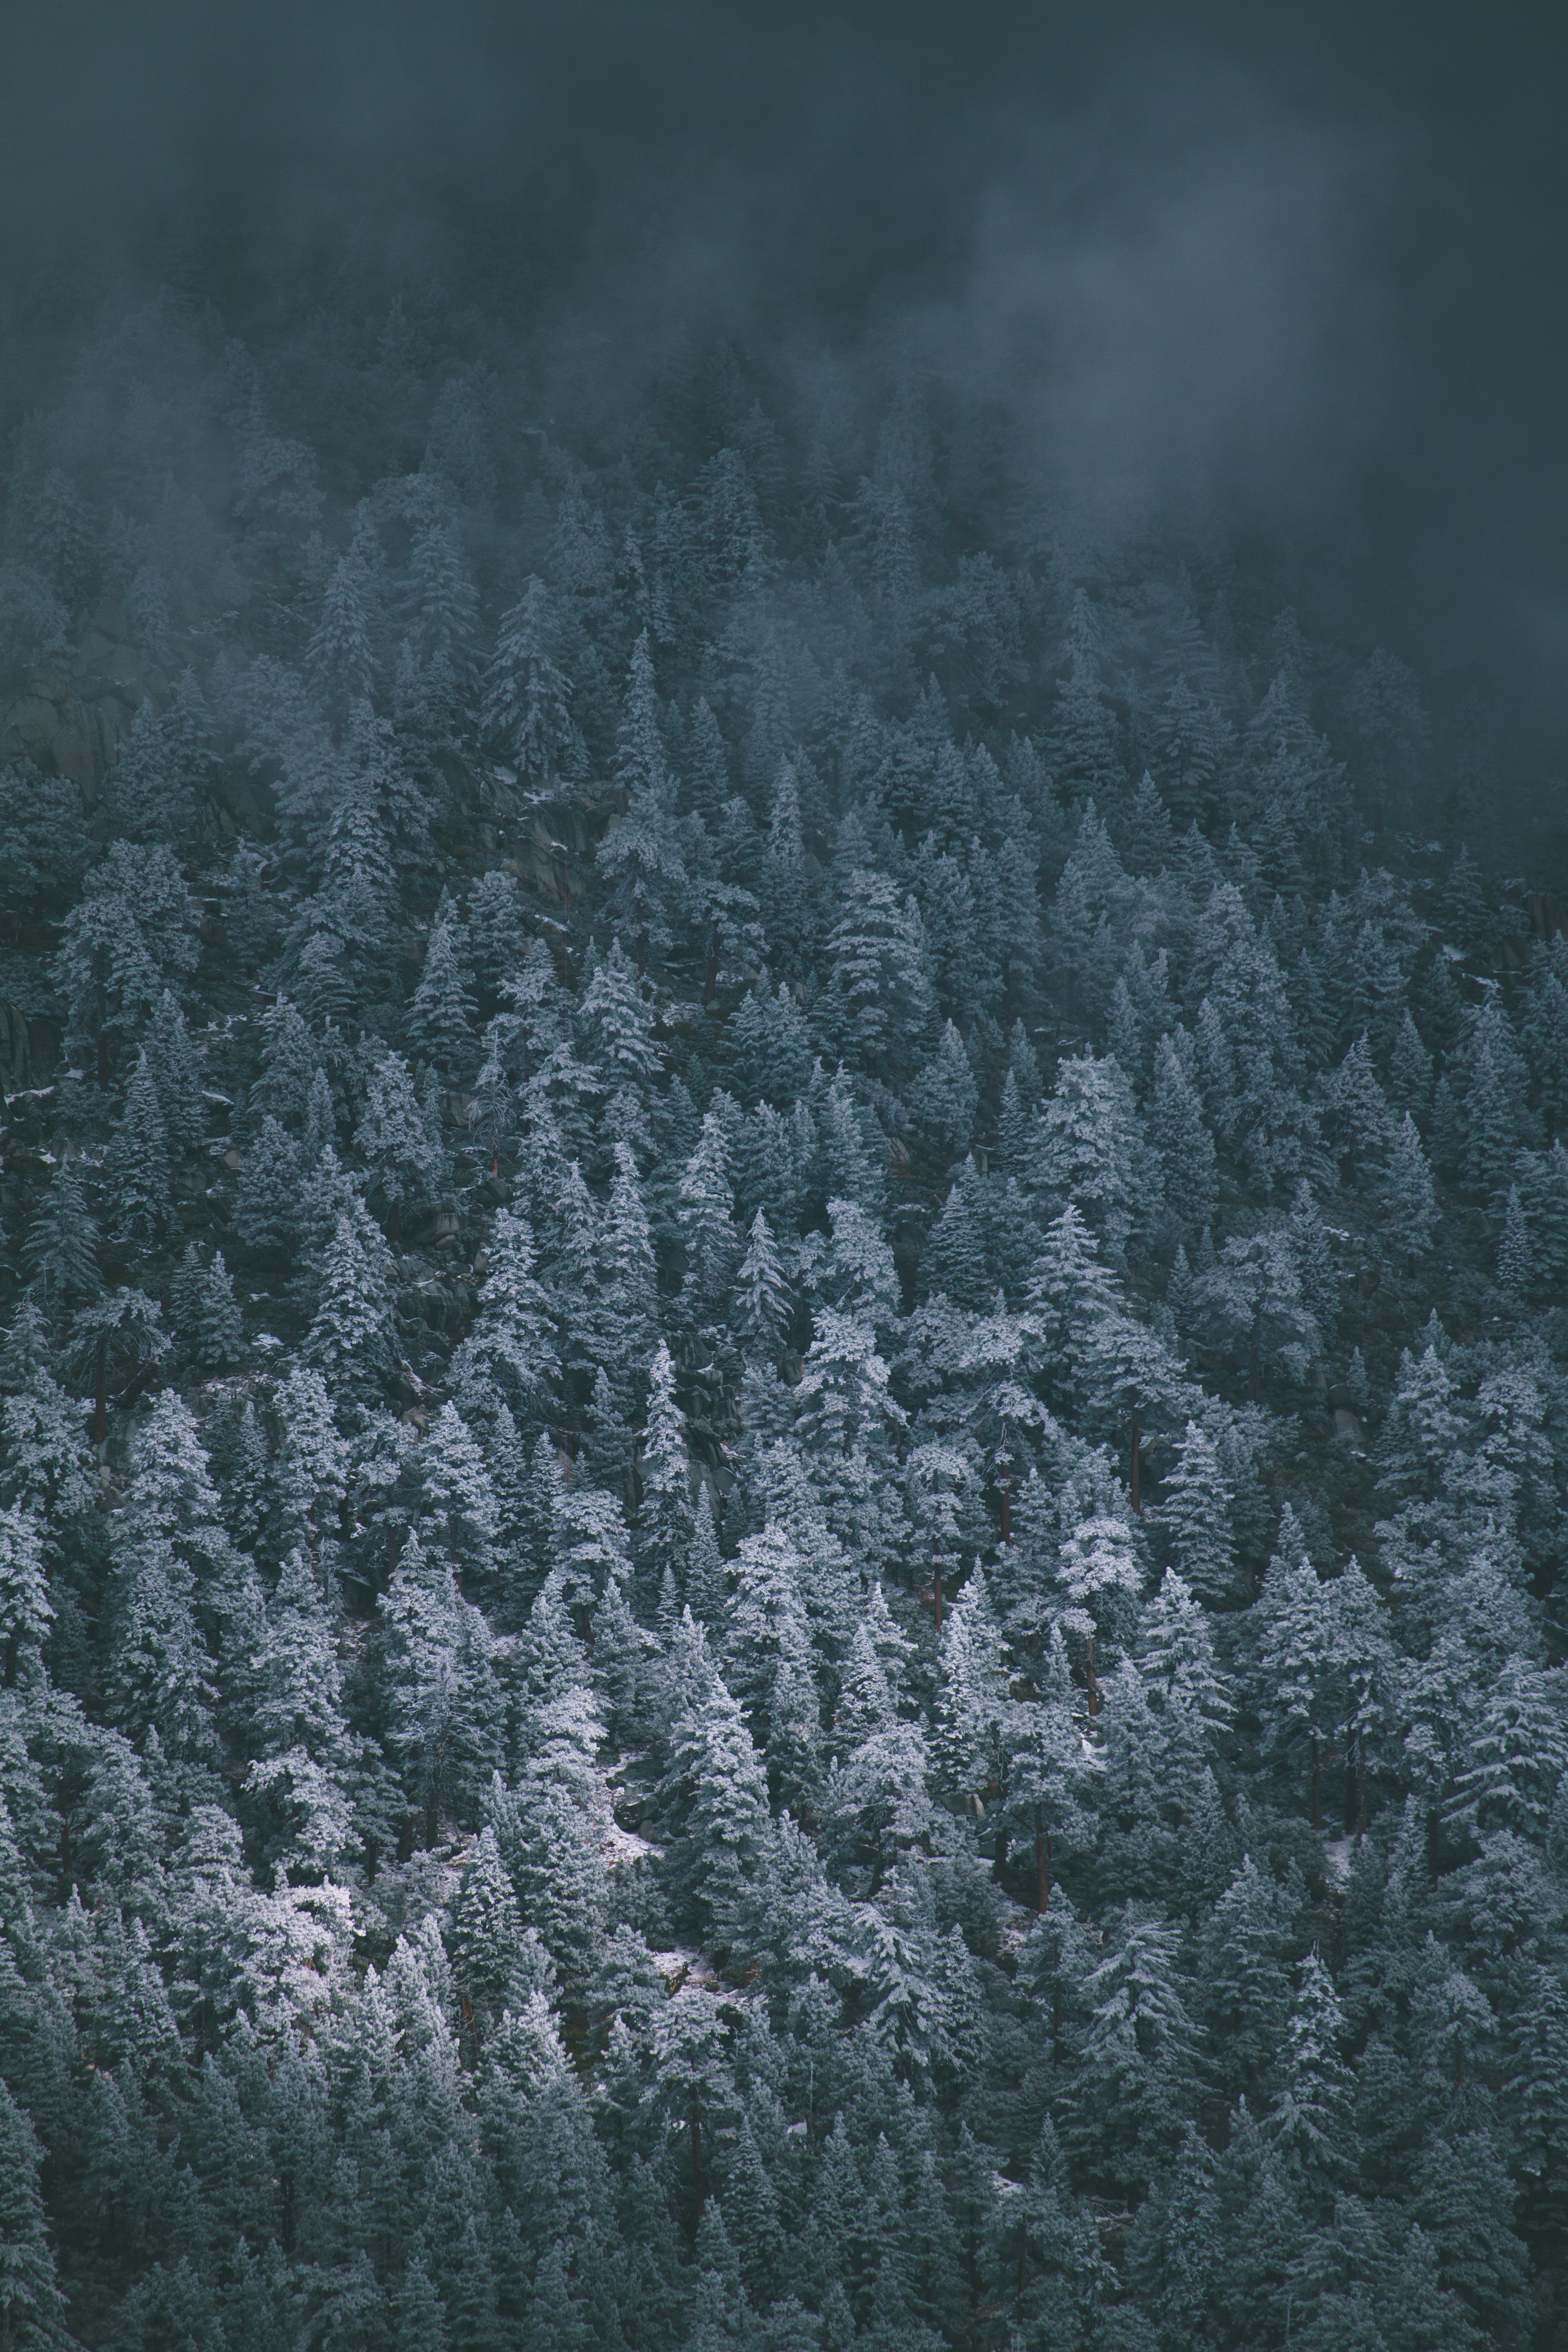 bird's eye view of trees covered by fogs